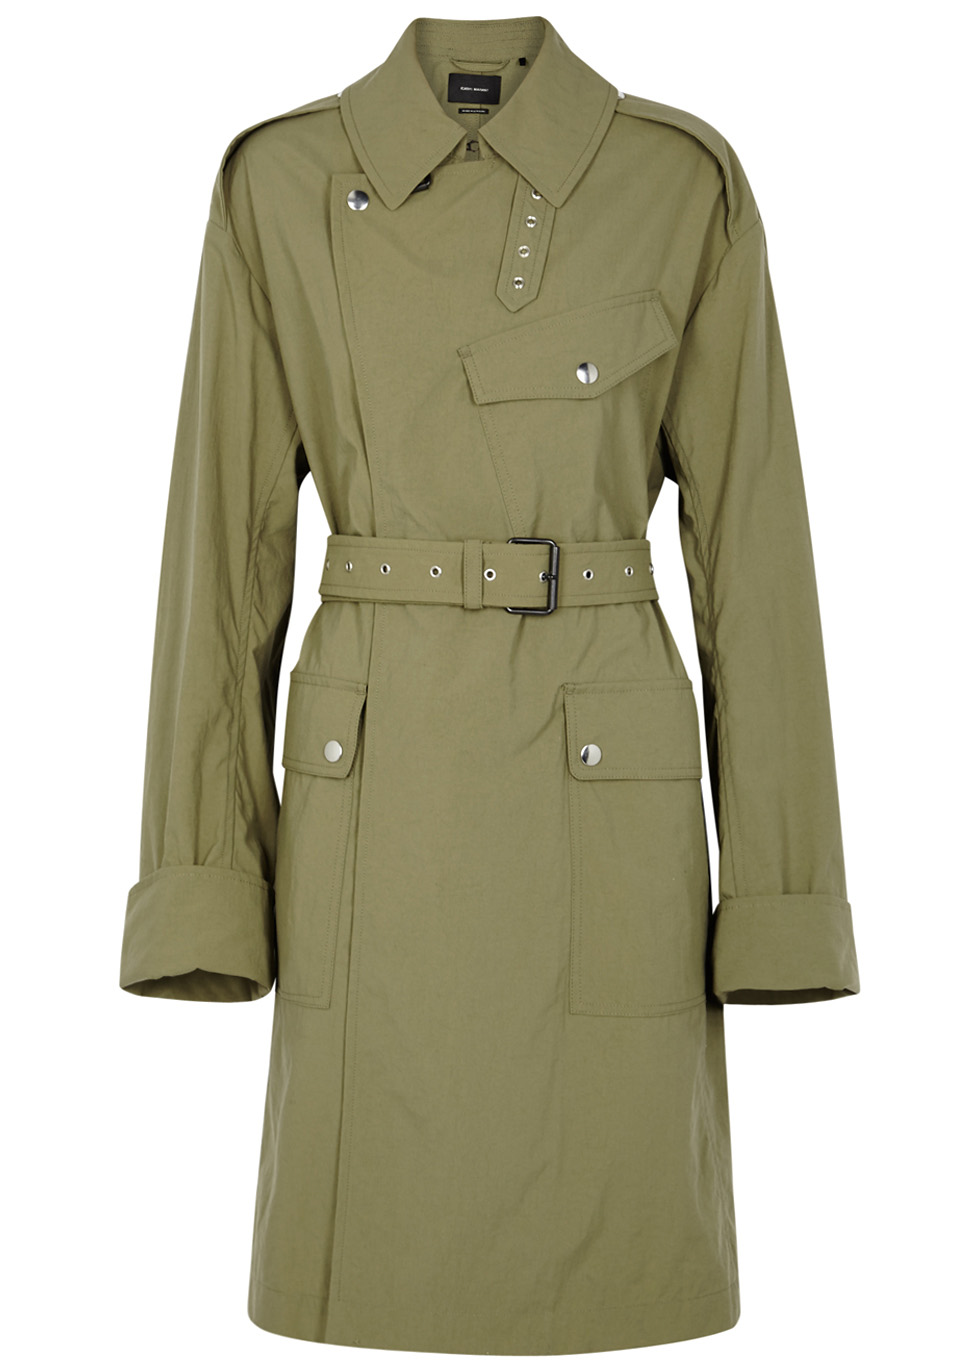 Leopald army green shell trench coat ...